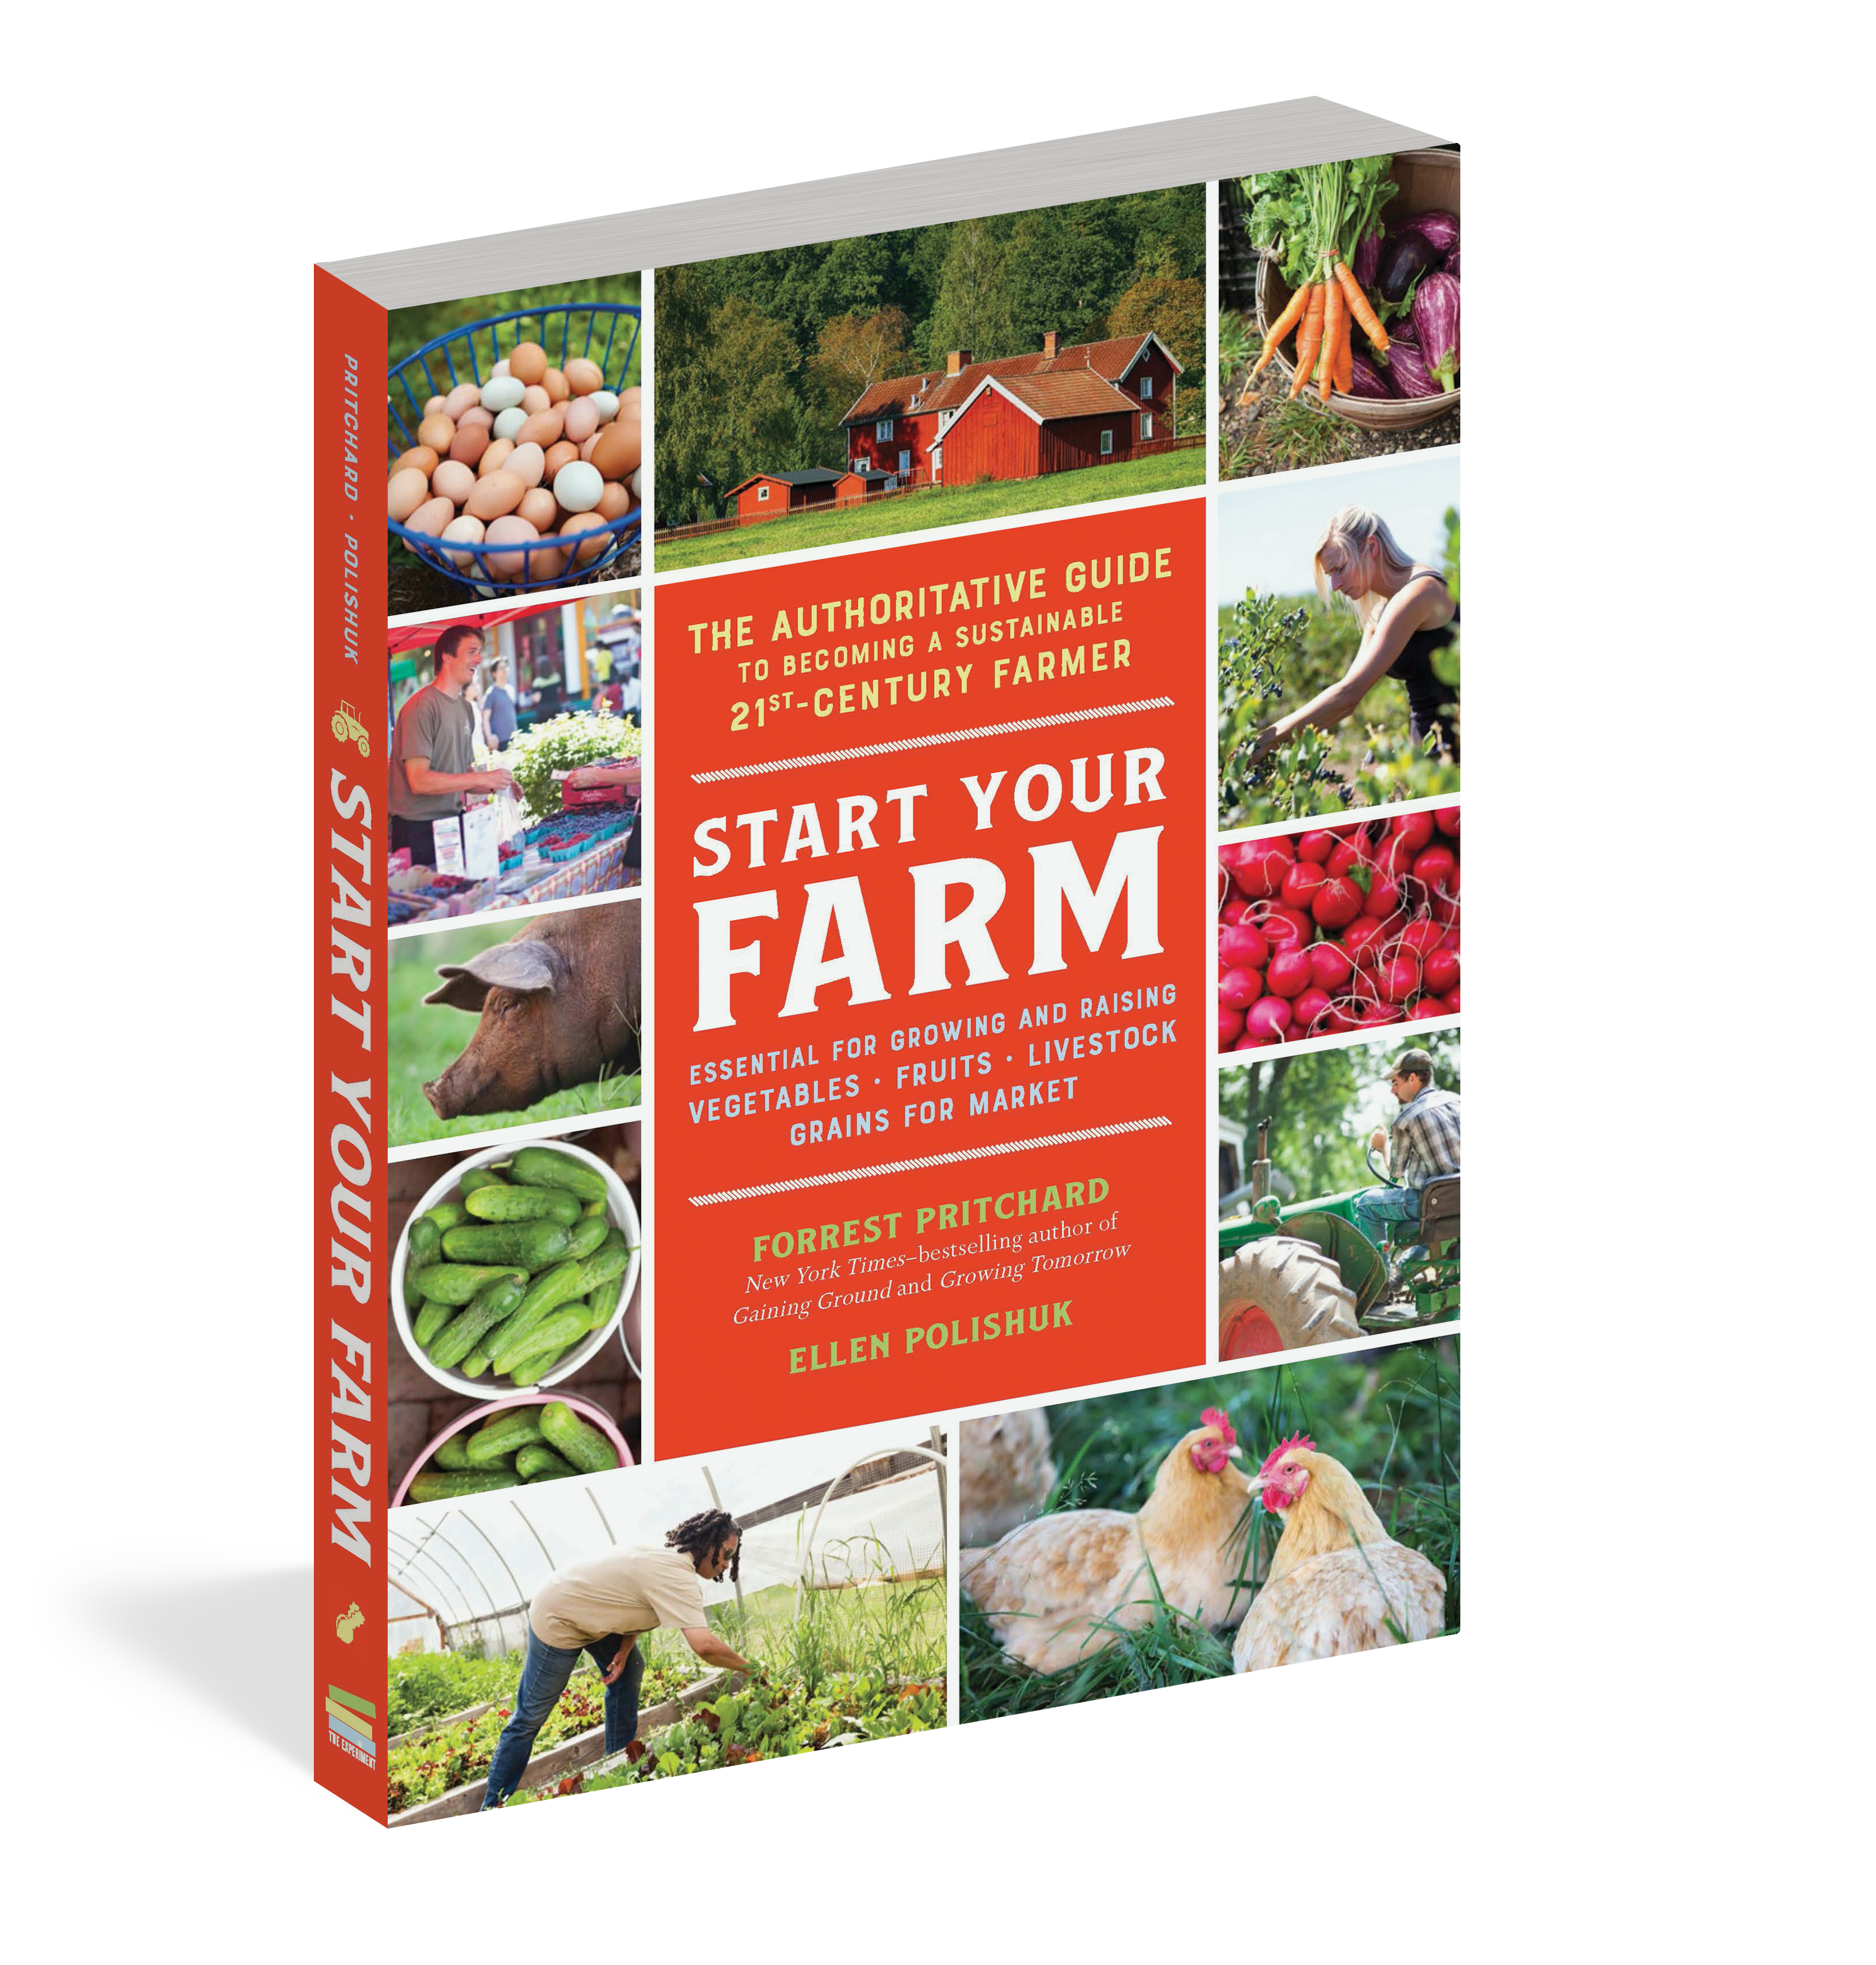 Books Economics Start Your Farm The Authoritative Guide to Becoming a Sustainable 21st Century Farmer